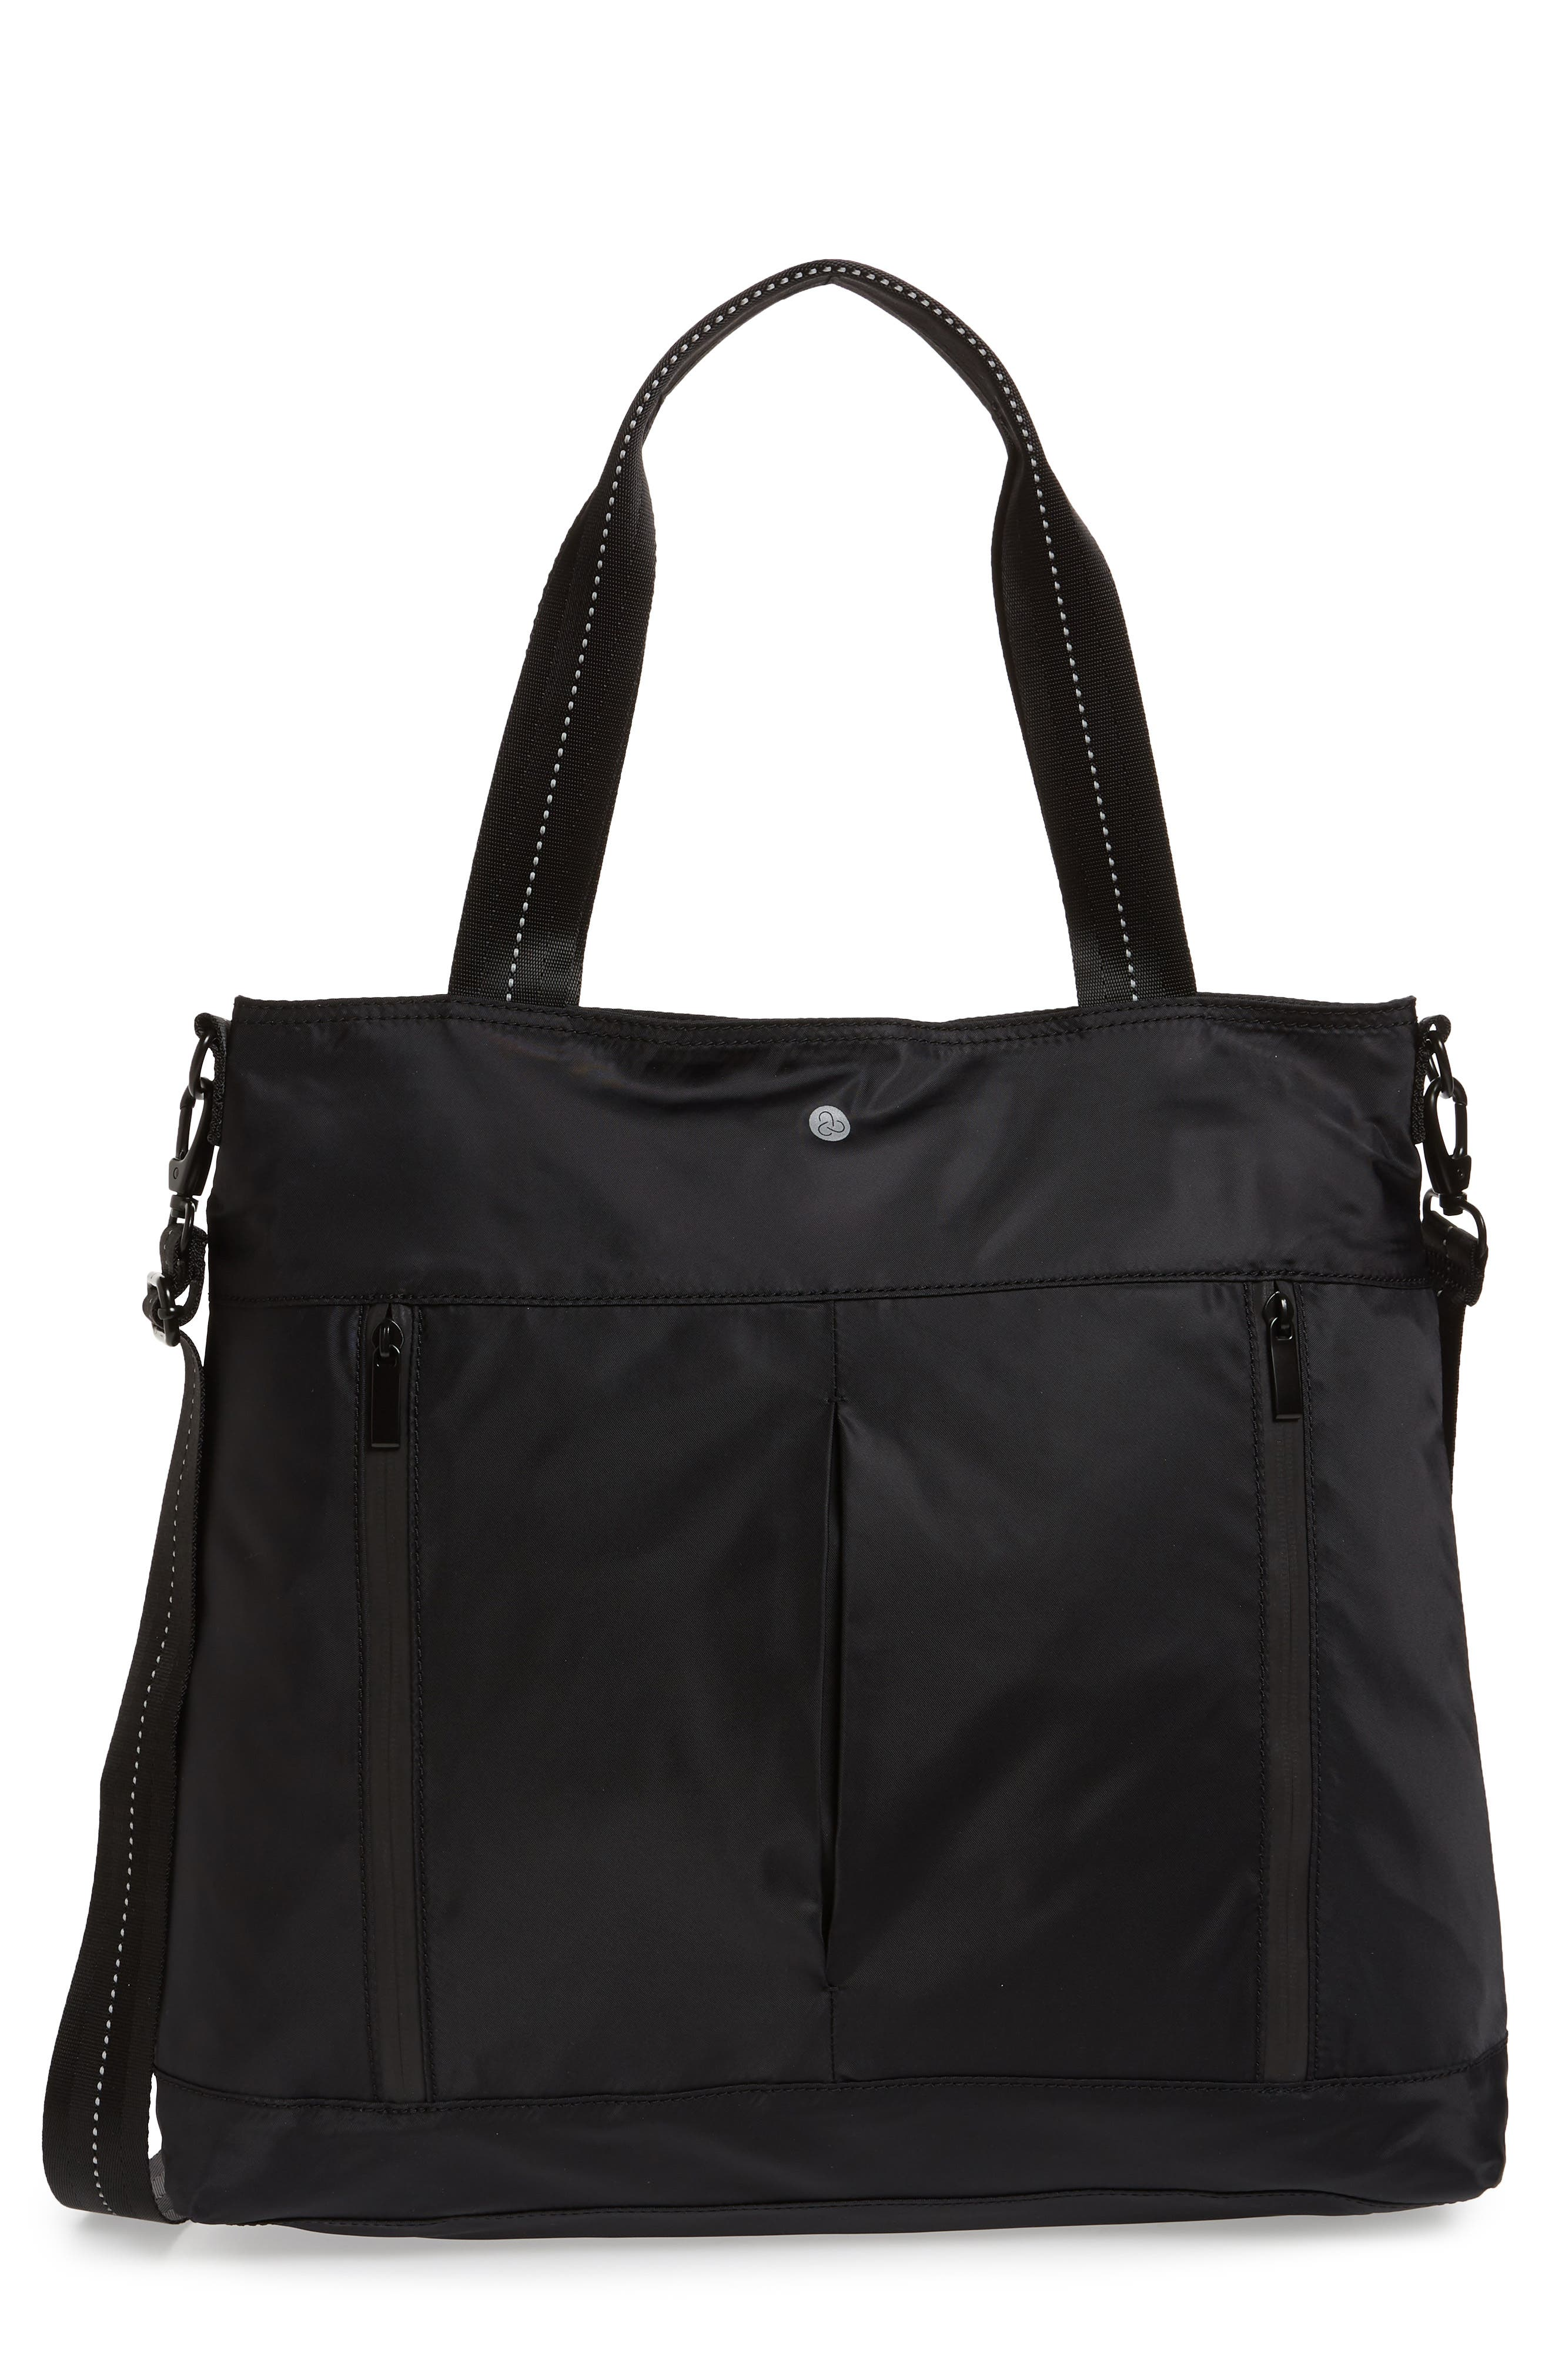 Reflective Nylon Tote Bag,                             Main thumbnail 1, color,                             Black